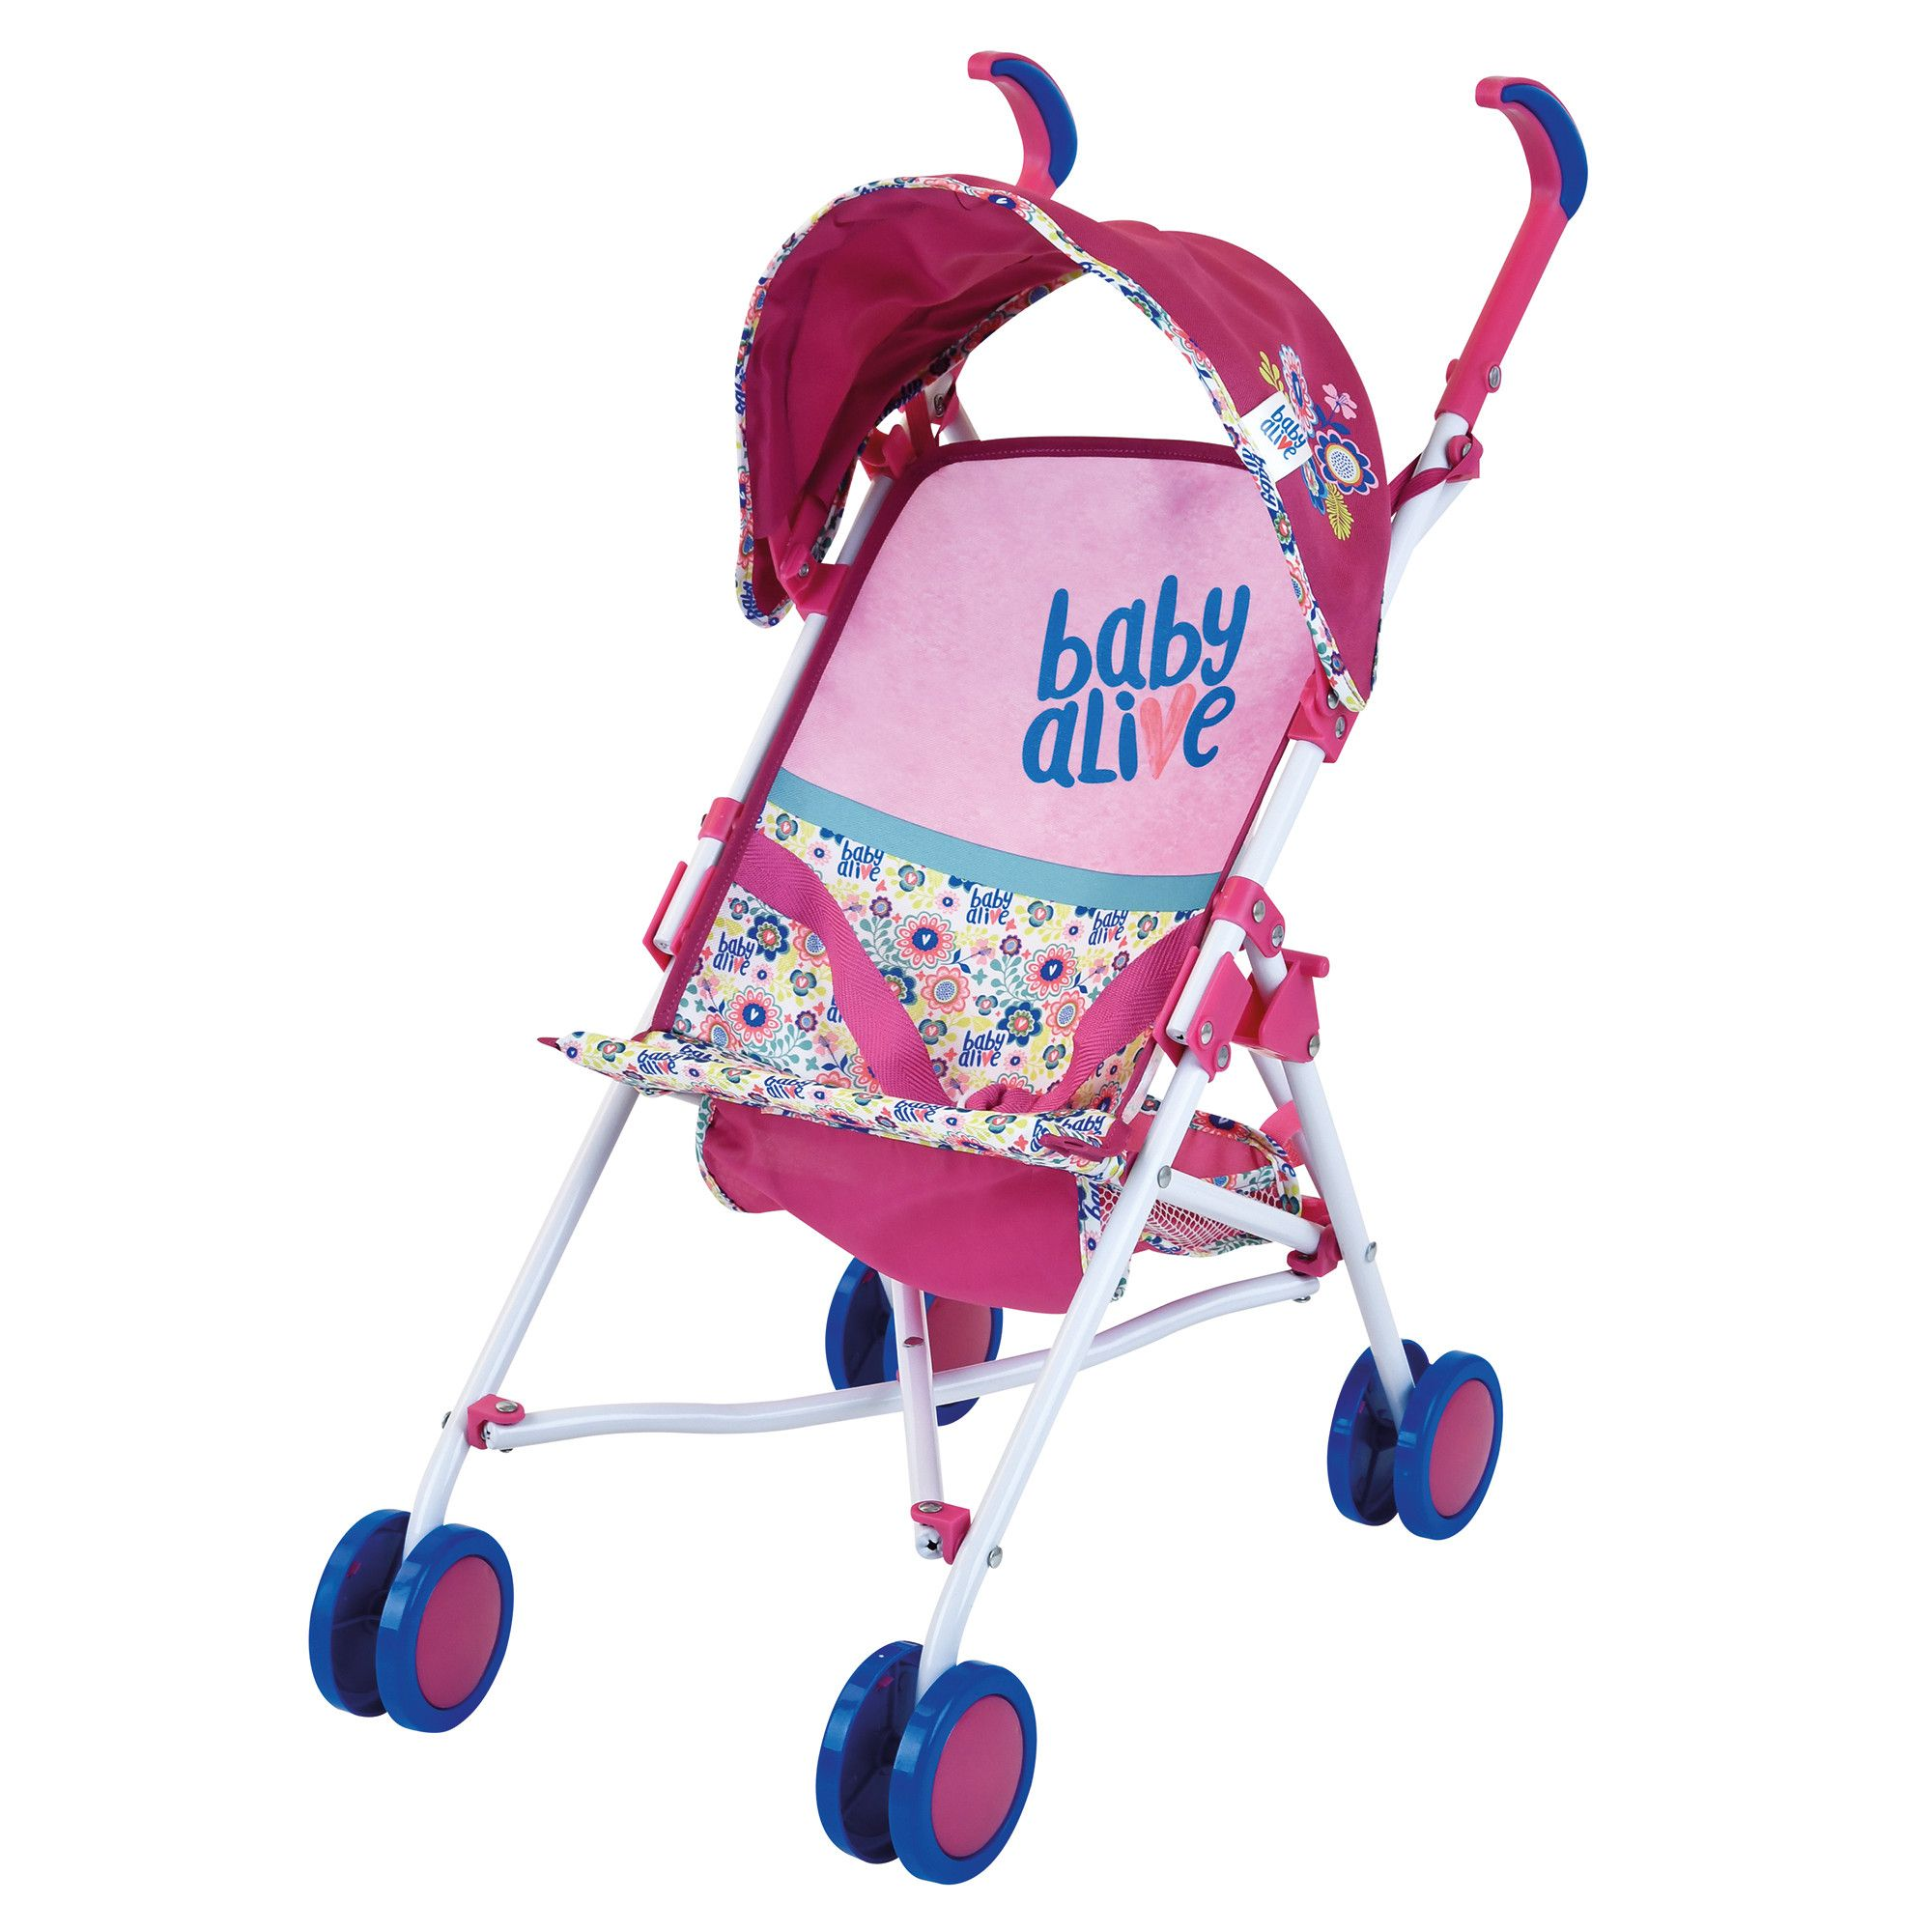 Baby Alive Doll Stroller Baby alive, Baby alive dolls